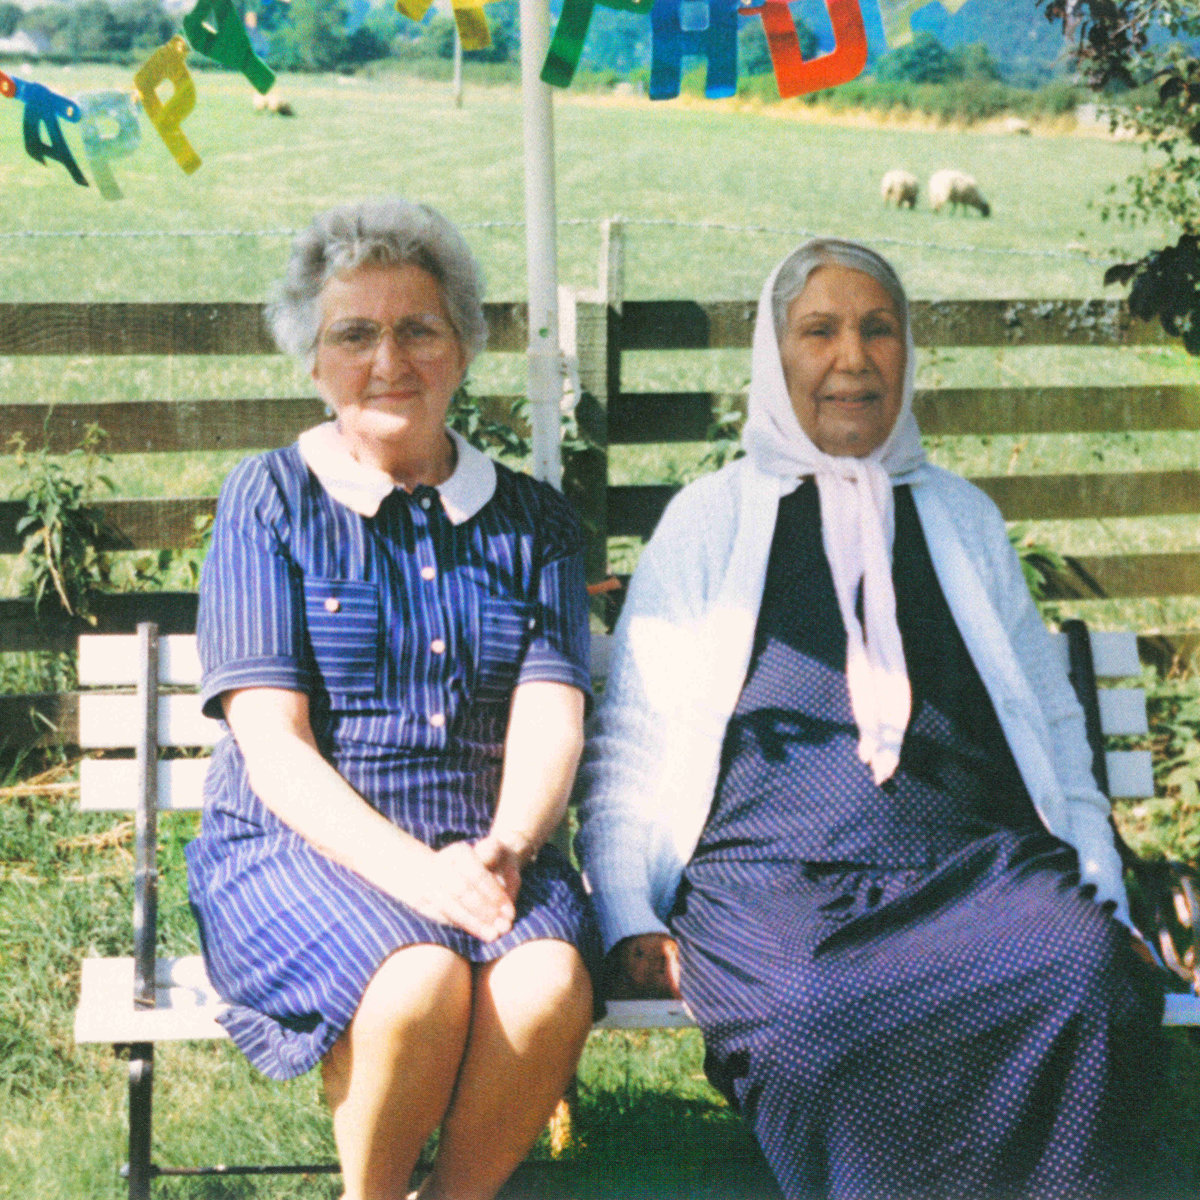 15. Dauwd - Theory Of Colours